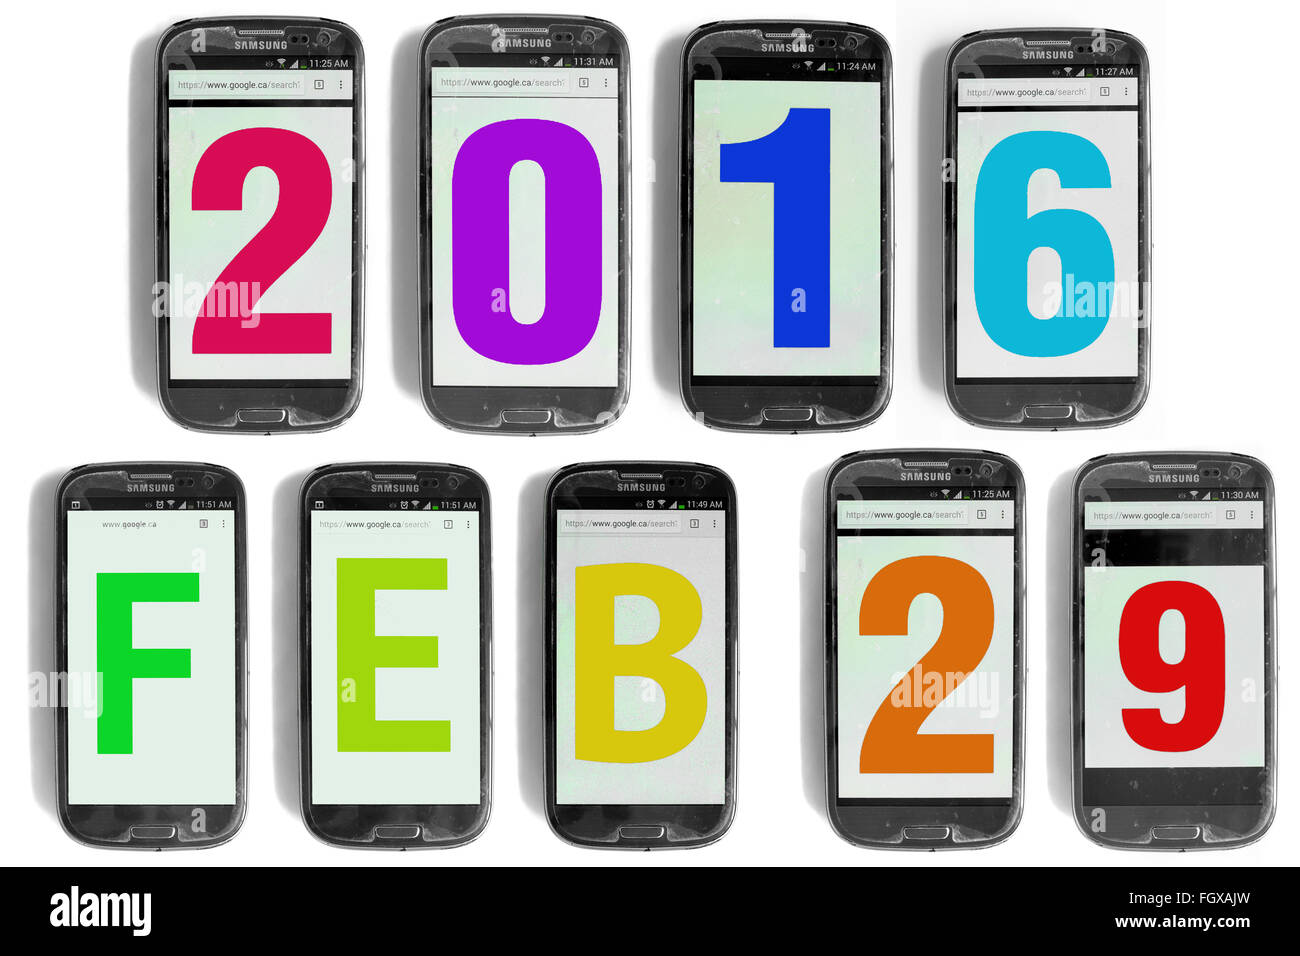 2016 Feb 29 written on the screens of smartphones photographed against a white background. - Stock Image